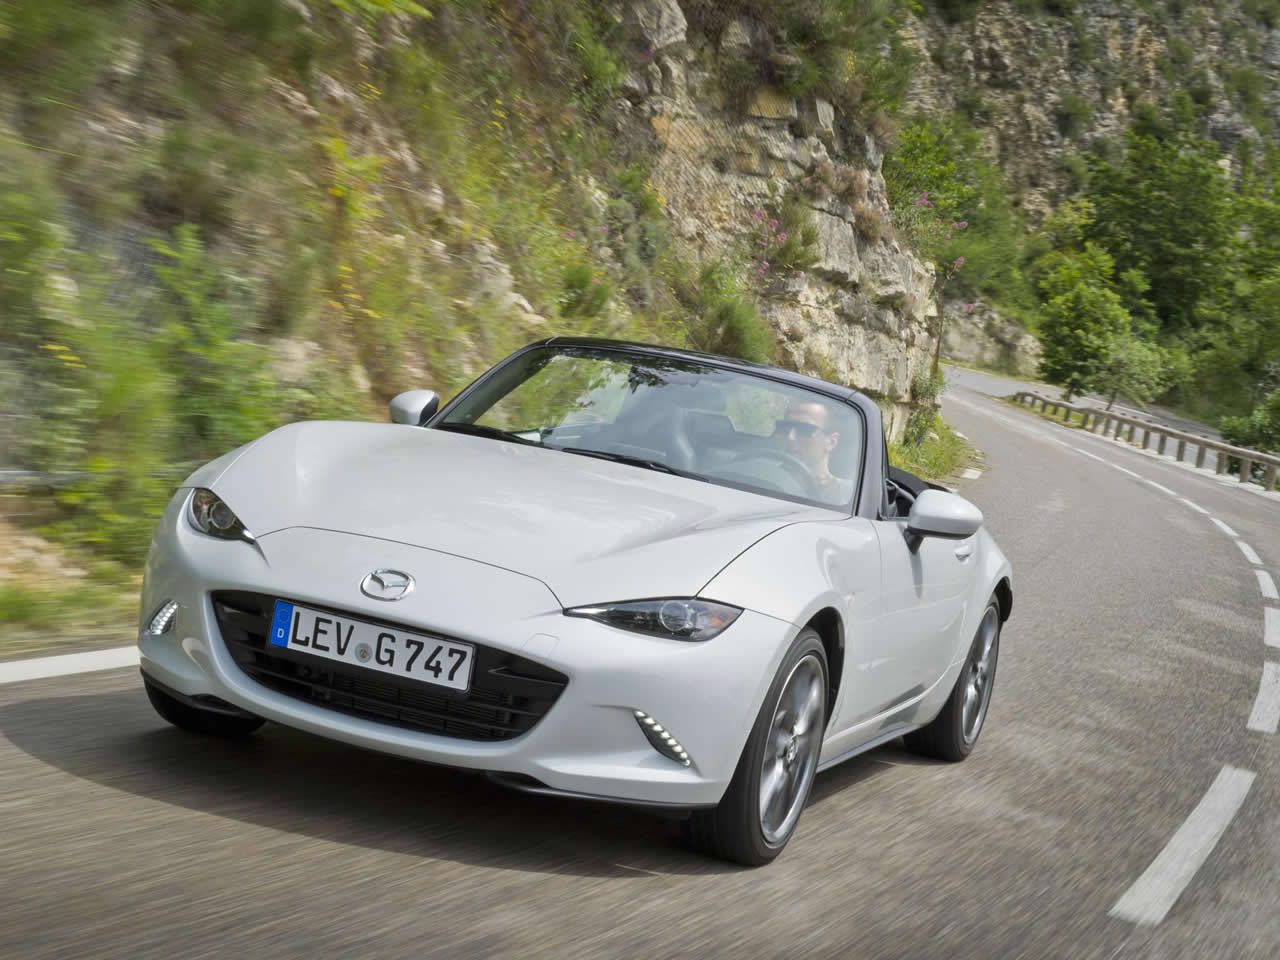 Mazda Mx 5 Nd : mazda mx 5 miata roadster buying guide ~ Aude.kayakingforconservation.com Haus und Dekorationen